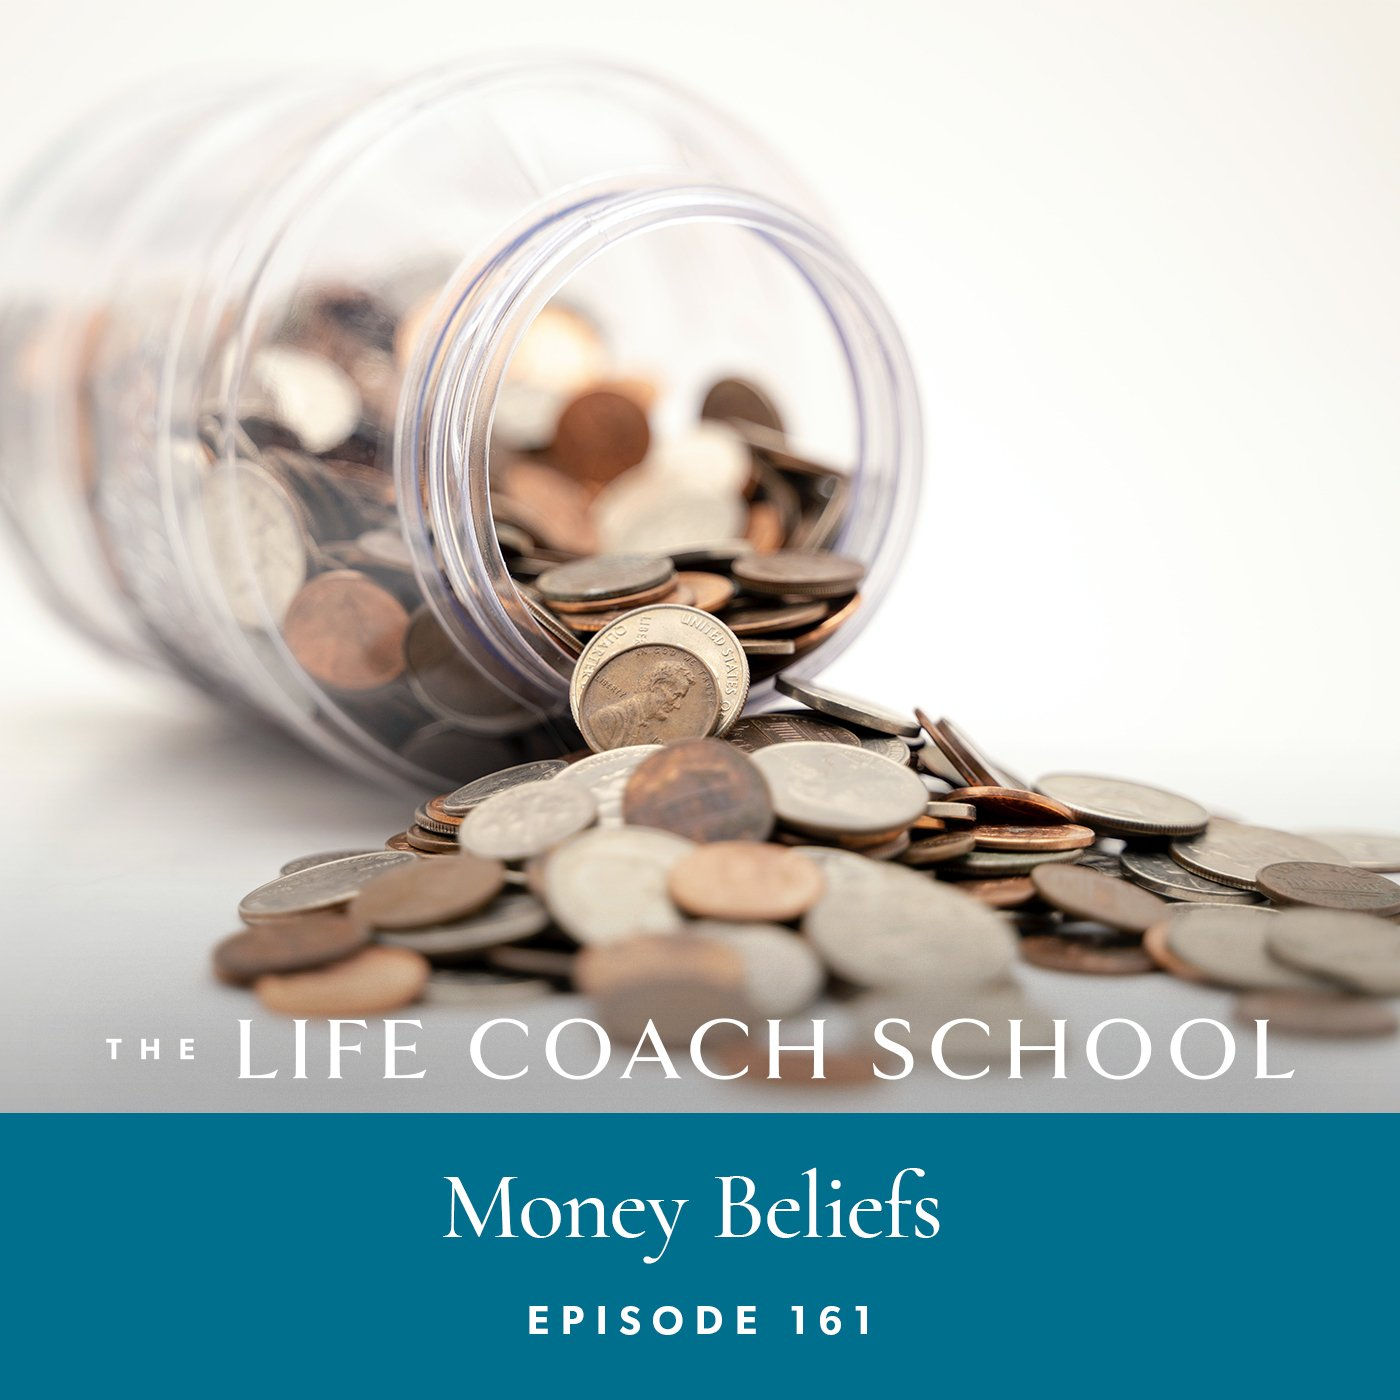 The Life Coach School Podcast with Brooke Castillo | Episode 161 | Money Beliefs